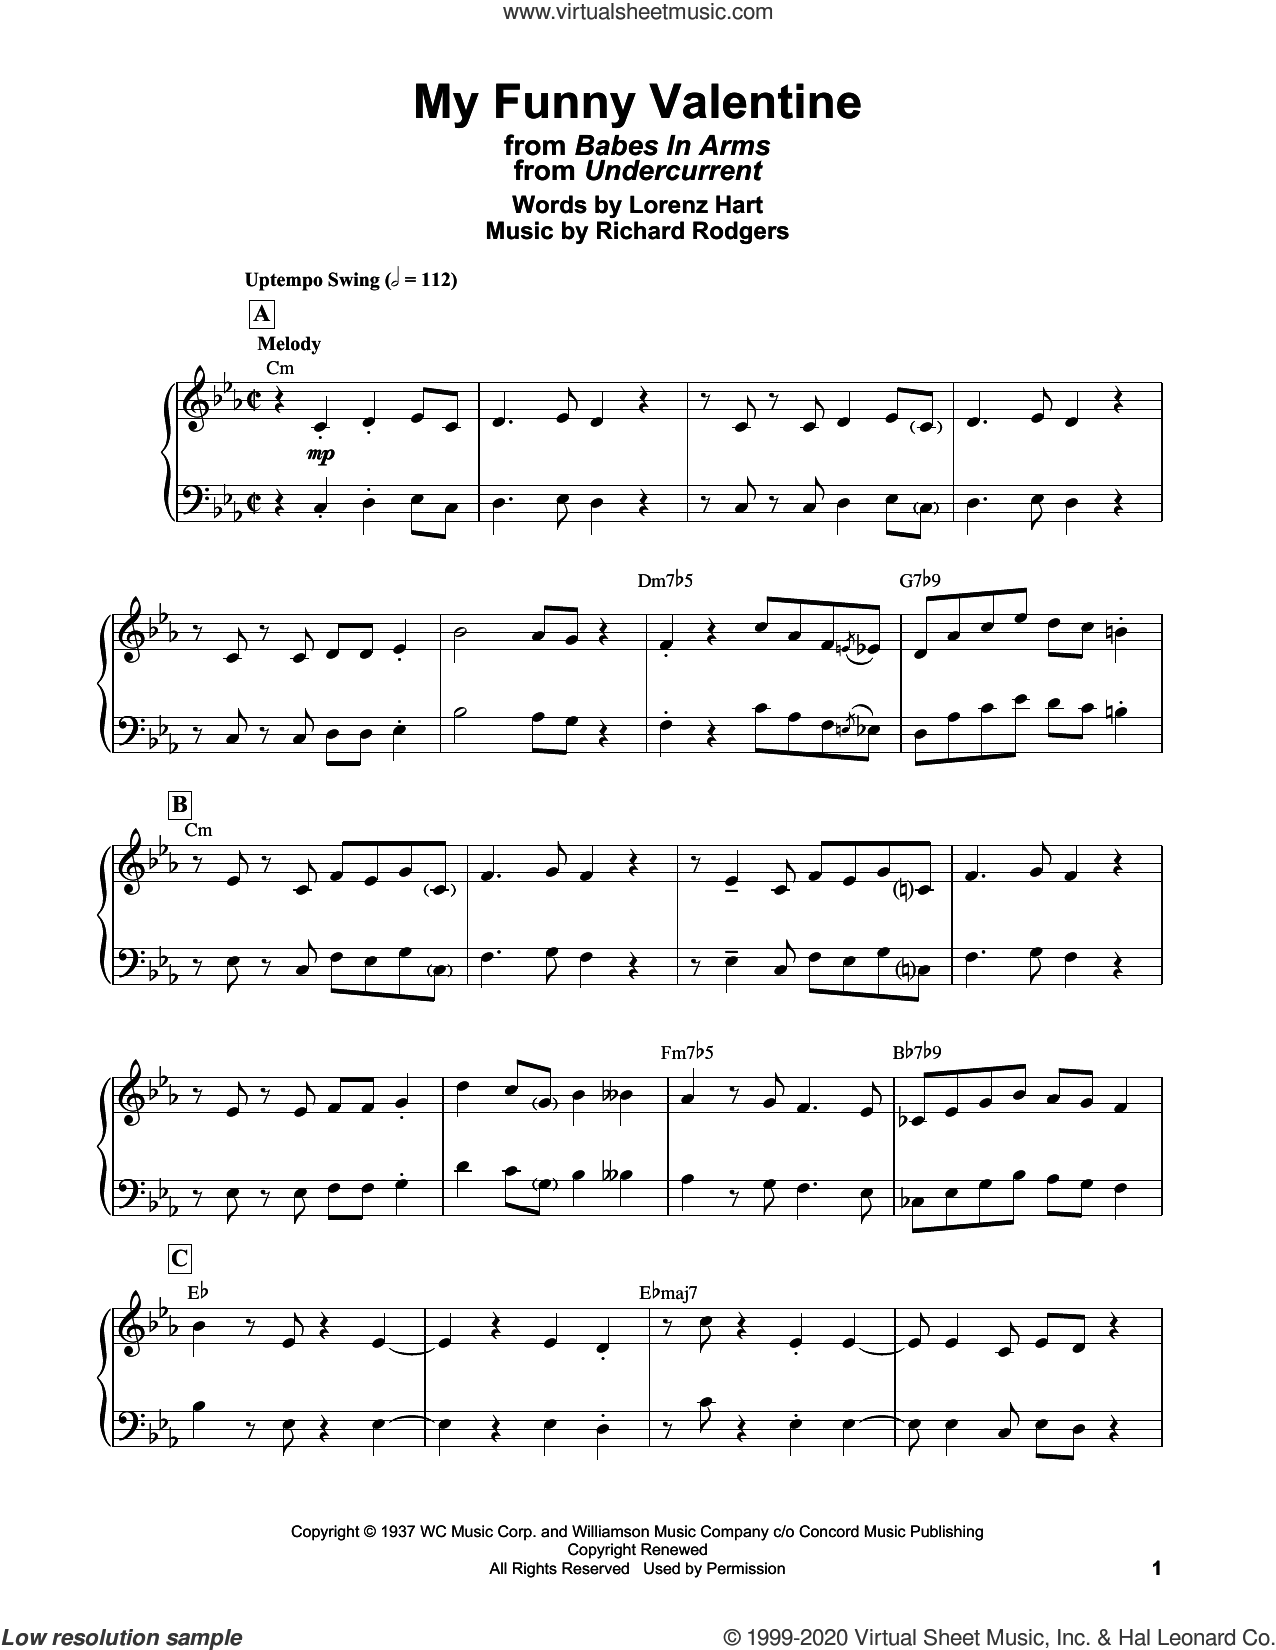 My Funny Valentine (from Babes In Arms) sheet music for piano solo by Bill Evans, Lorenz Hart and Richard Rodgers, intermediate skill level